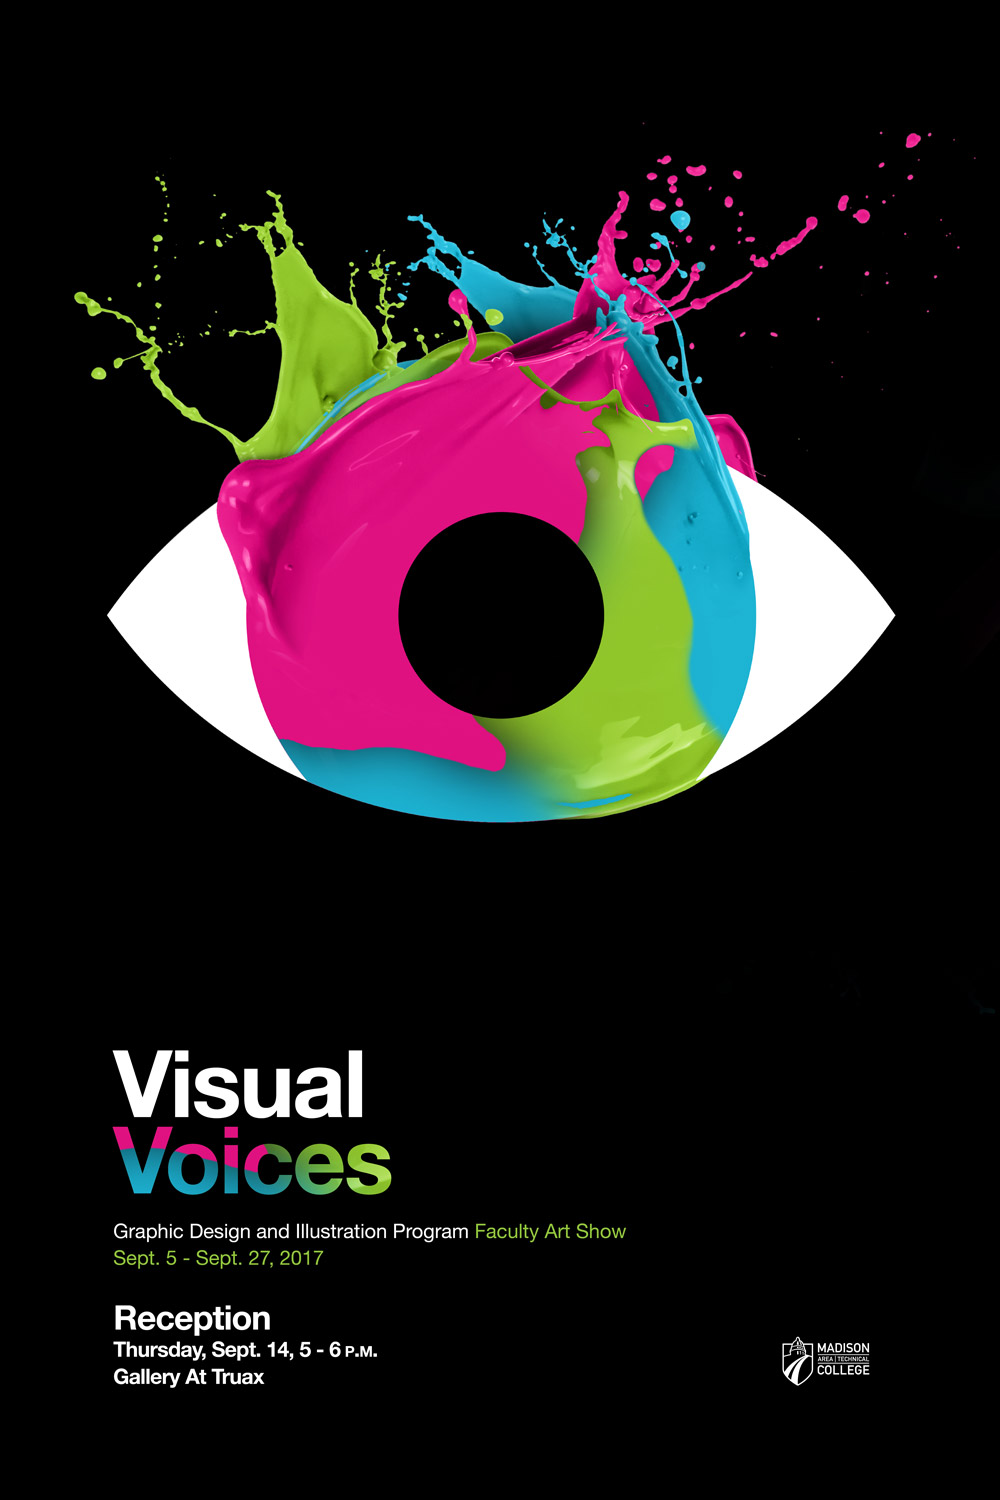 Visual Voices Poster - Together